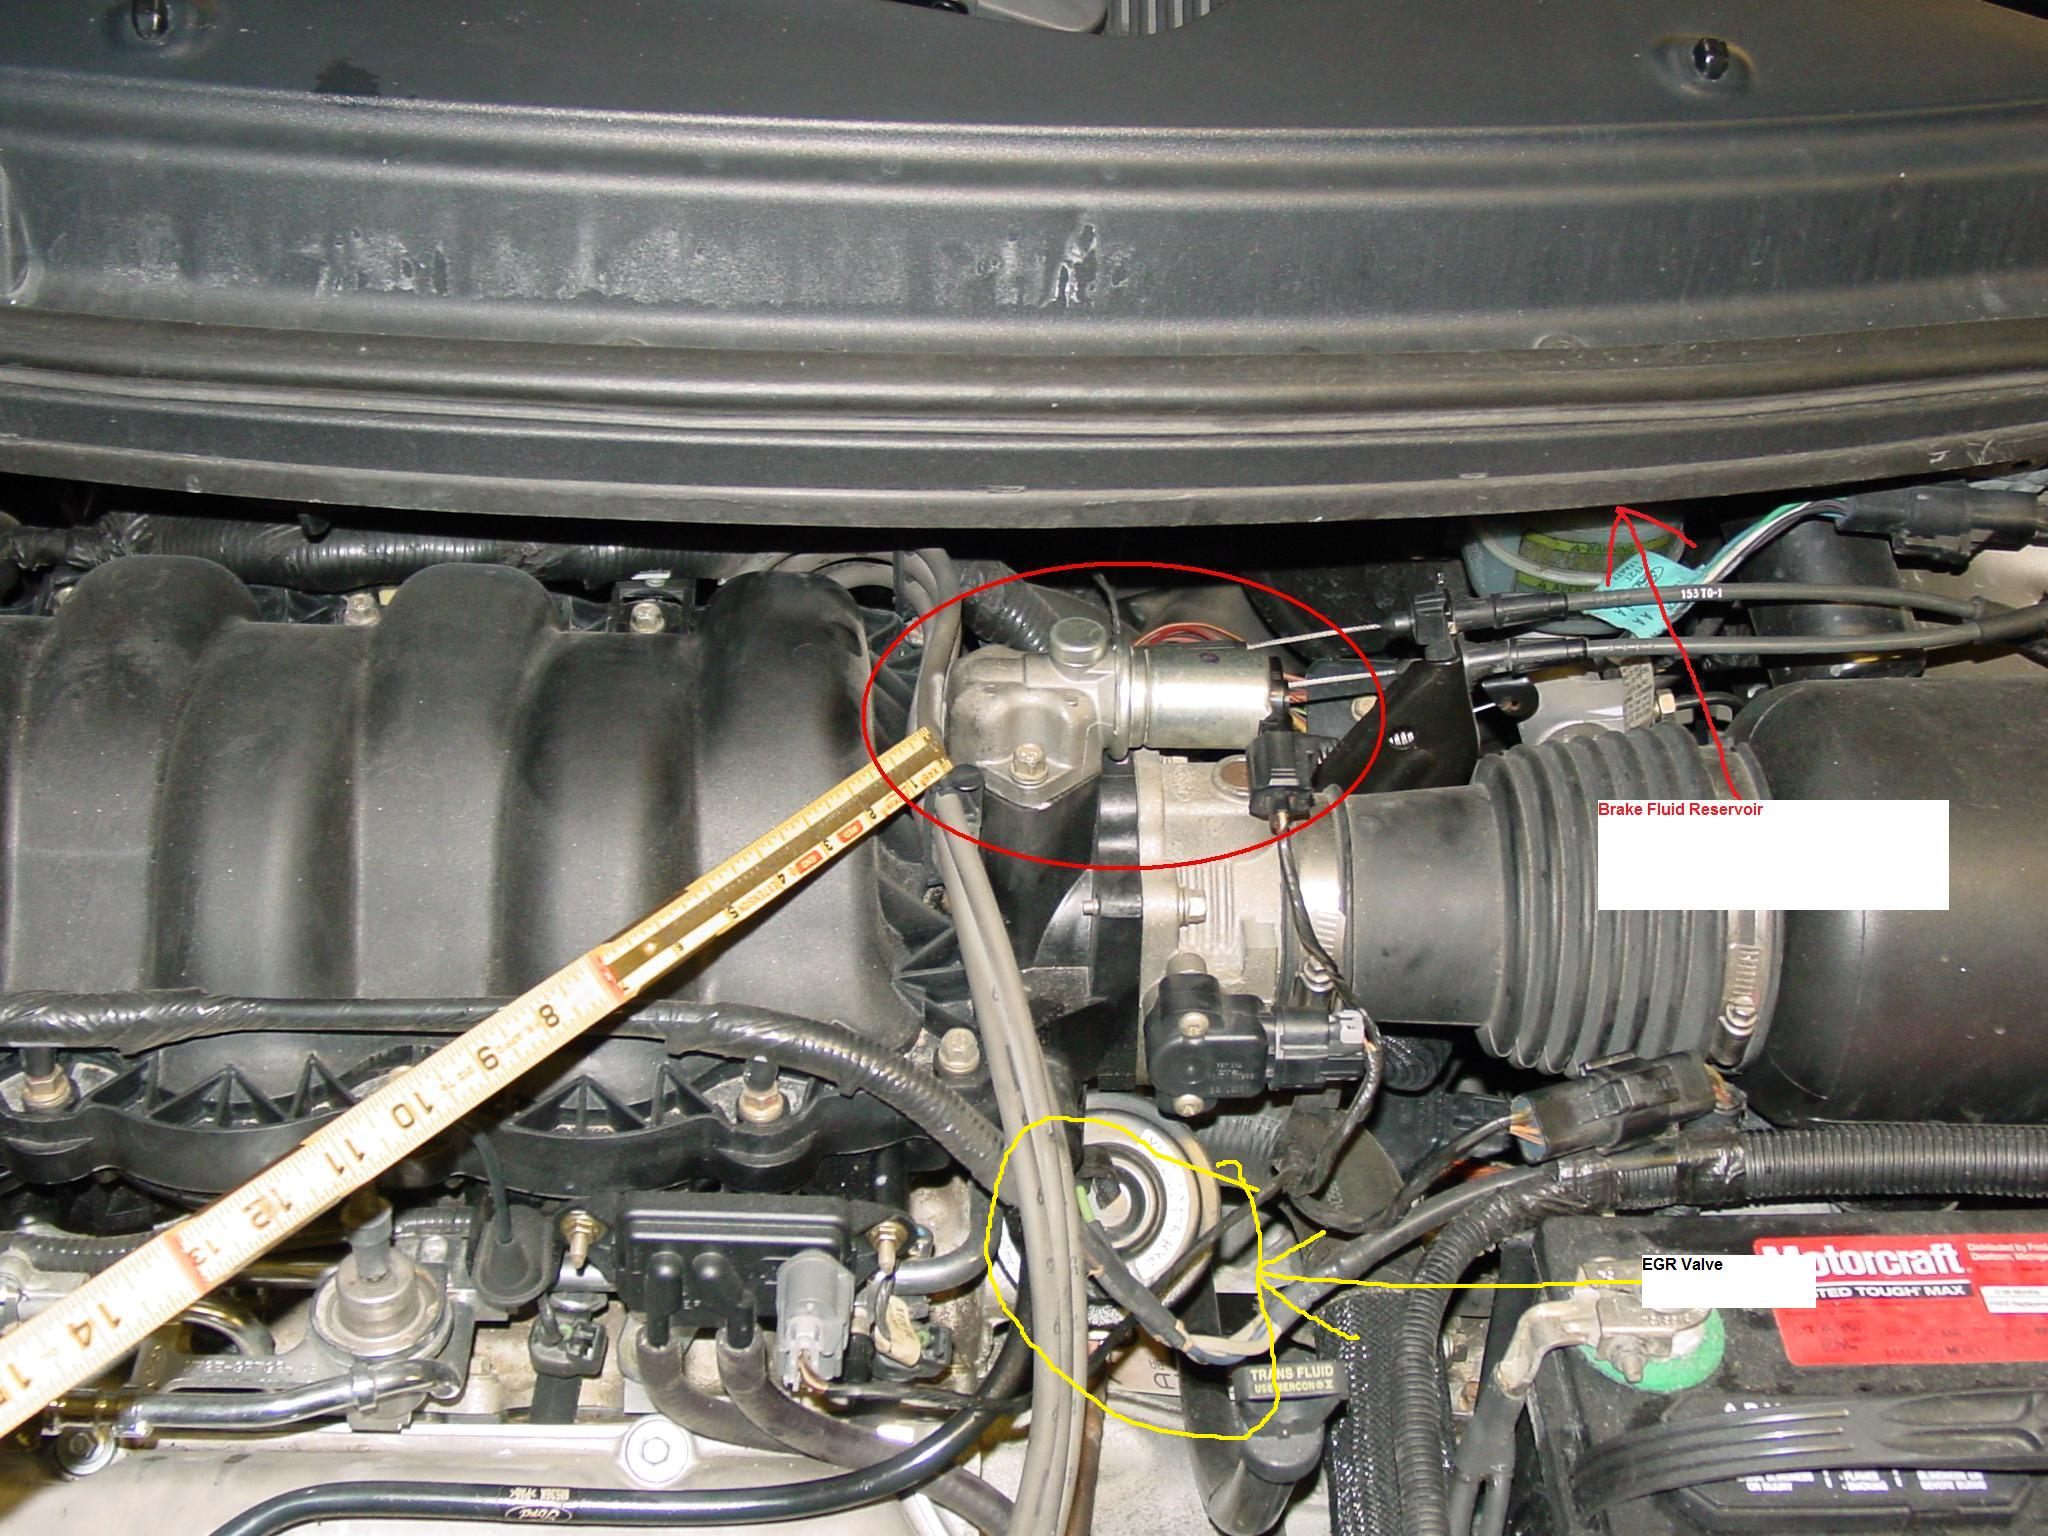 2003 windstar fuel filter location when i try to start my 2000 windstar it will just crank ...